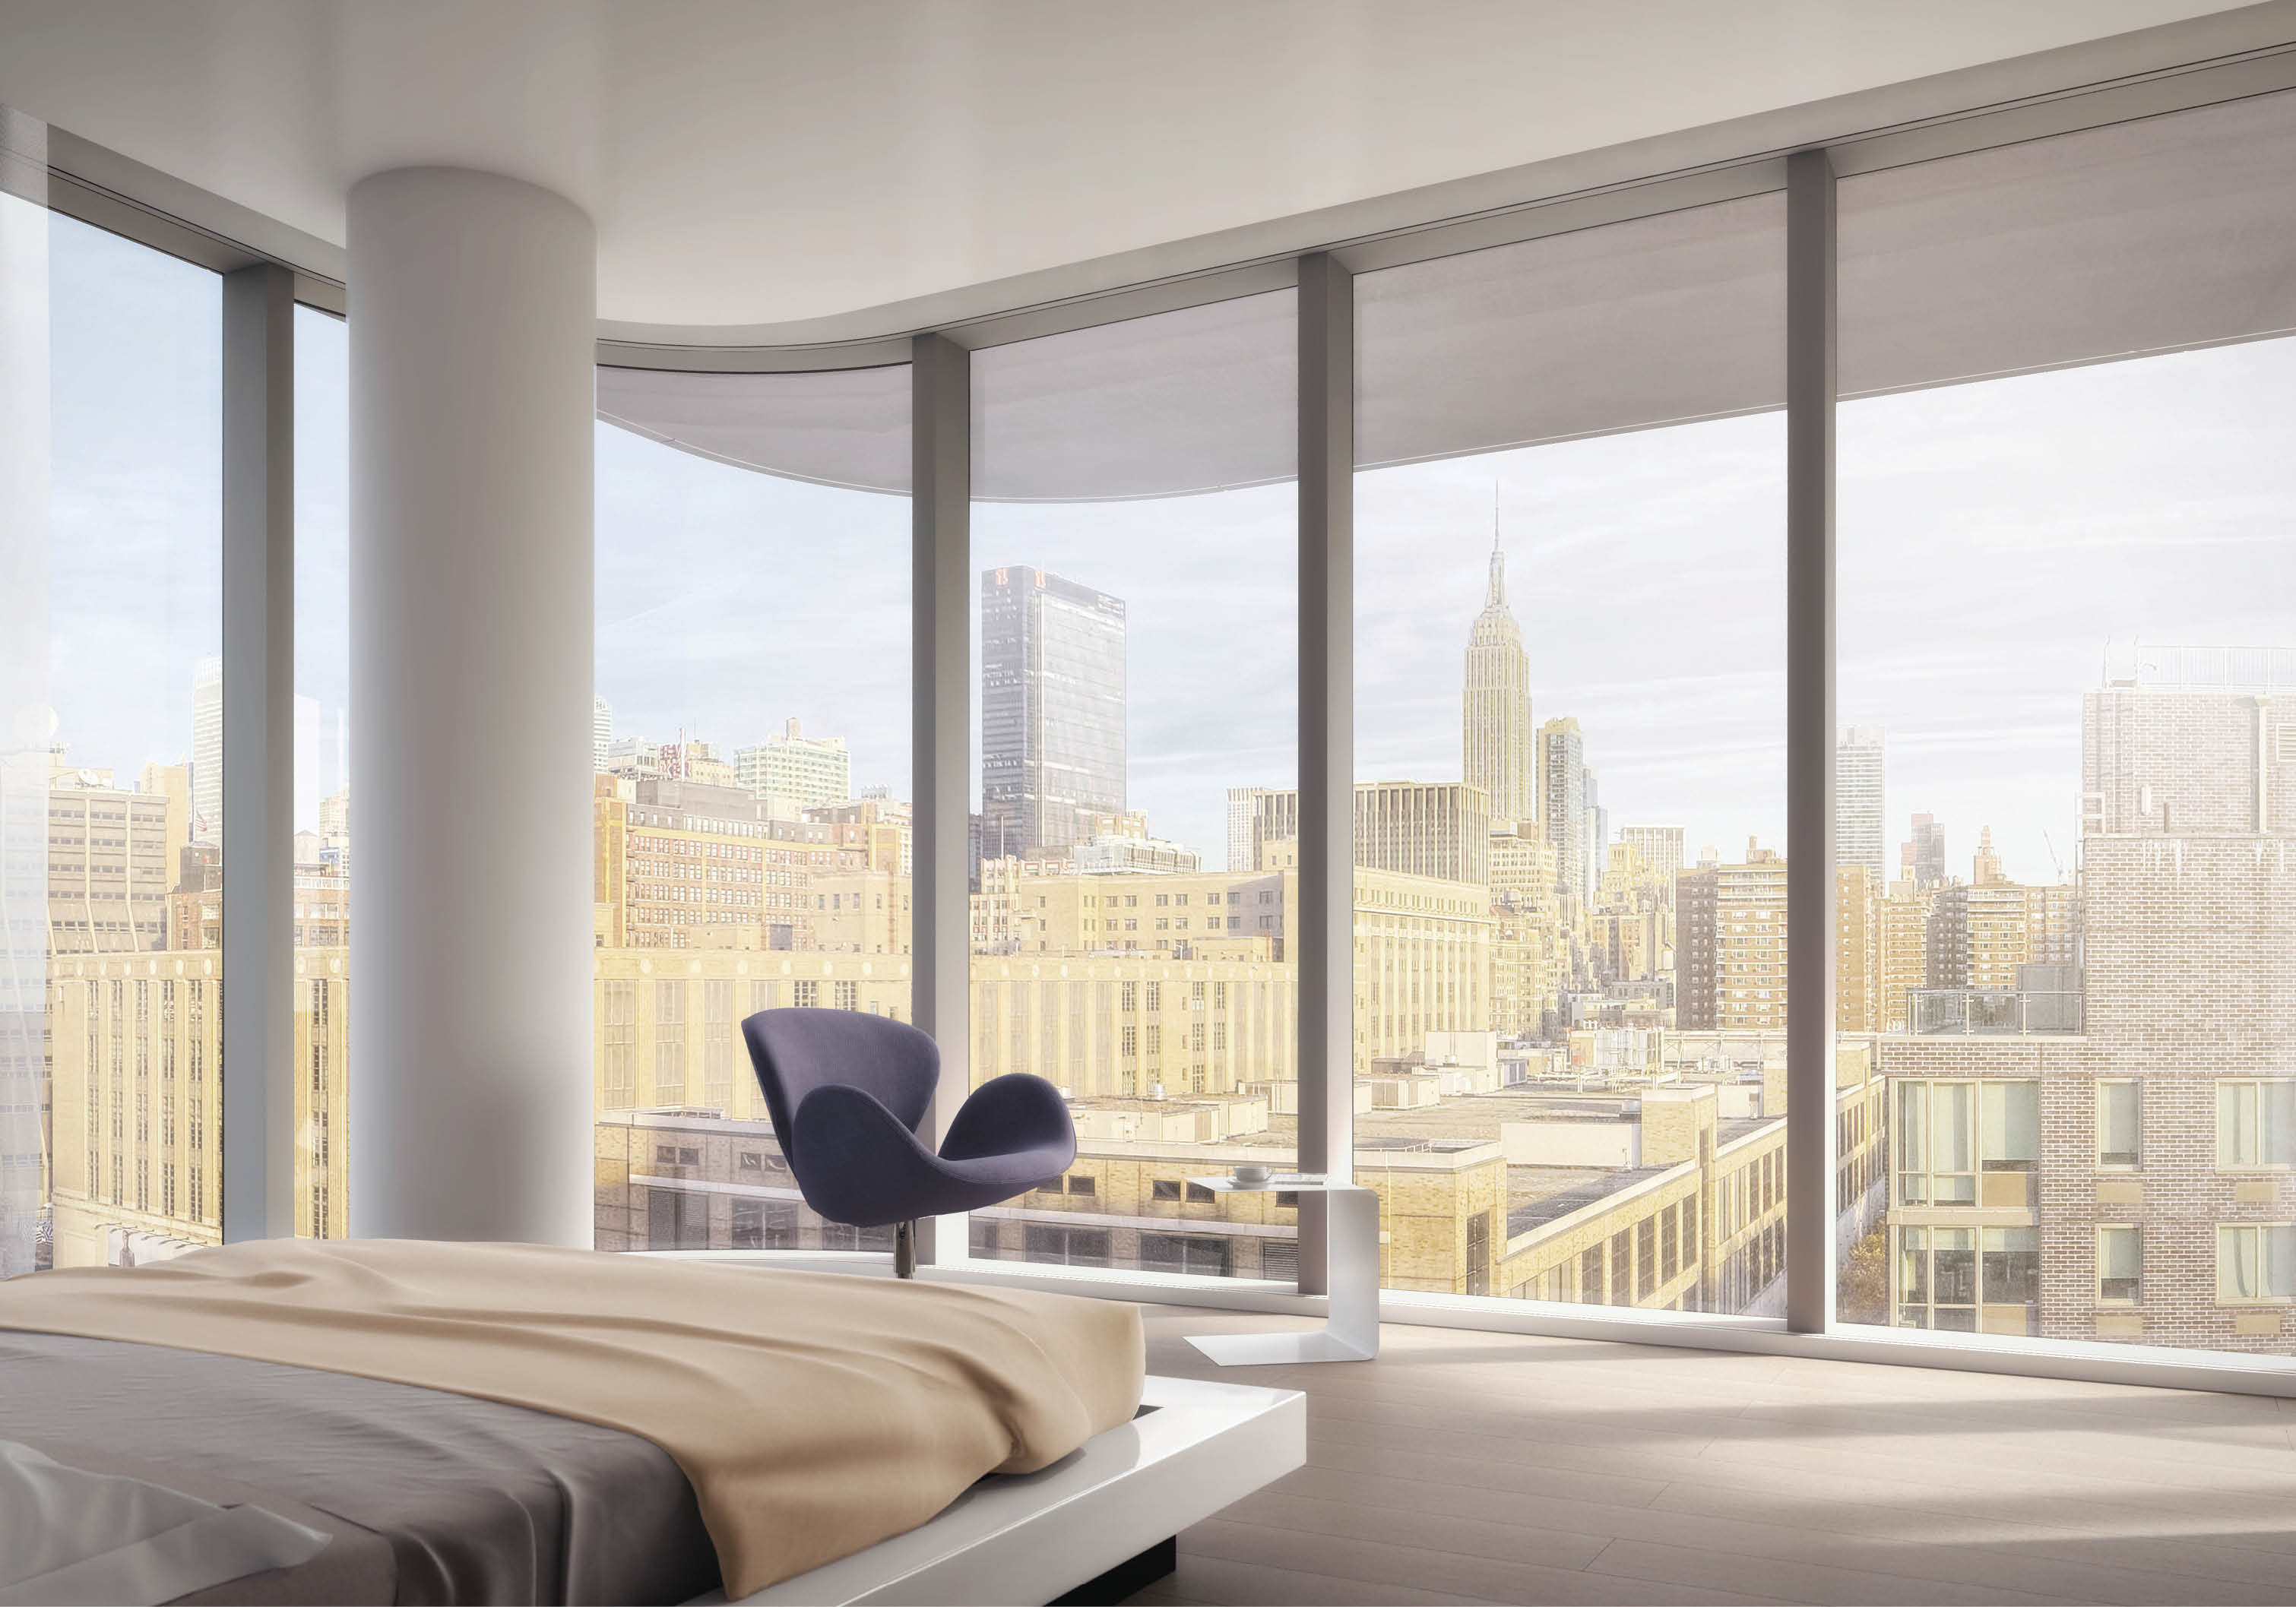 http://content.related.com/Chelsea Condos View